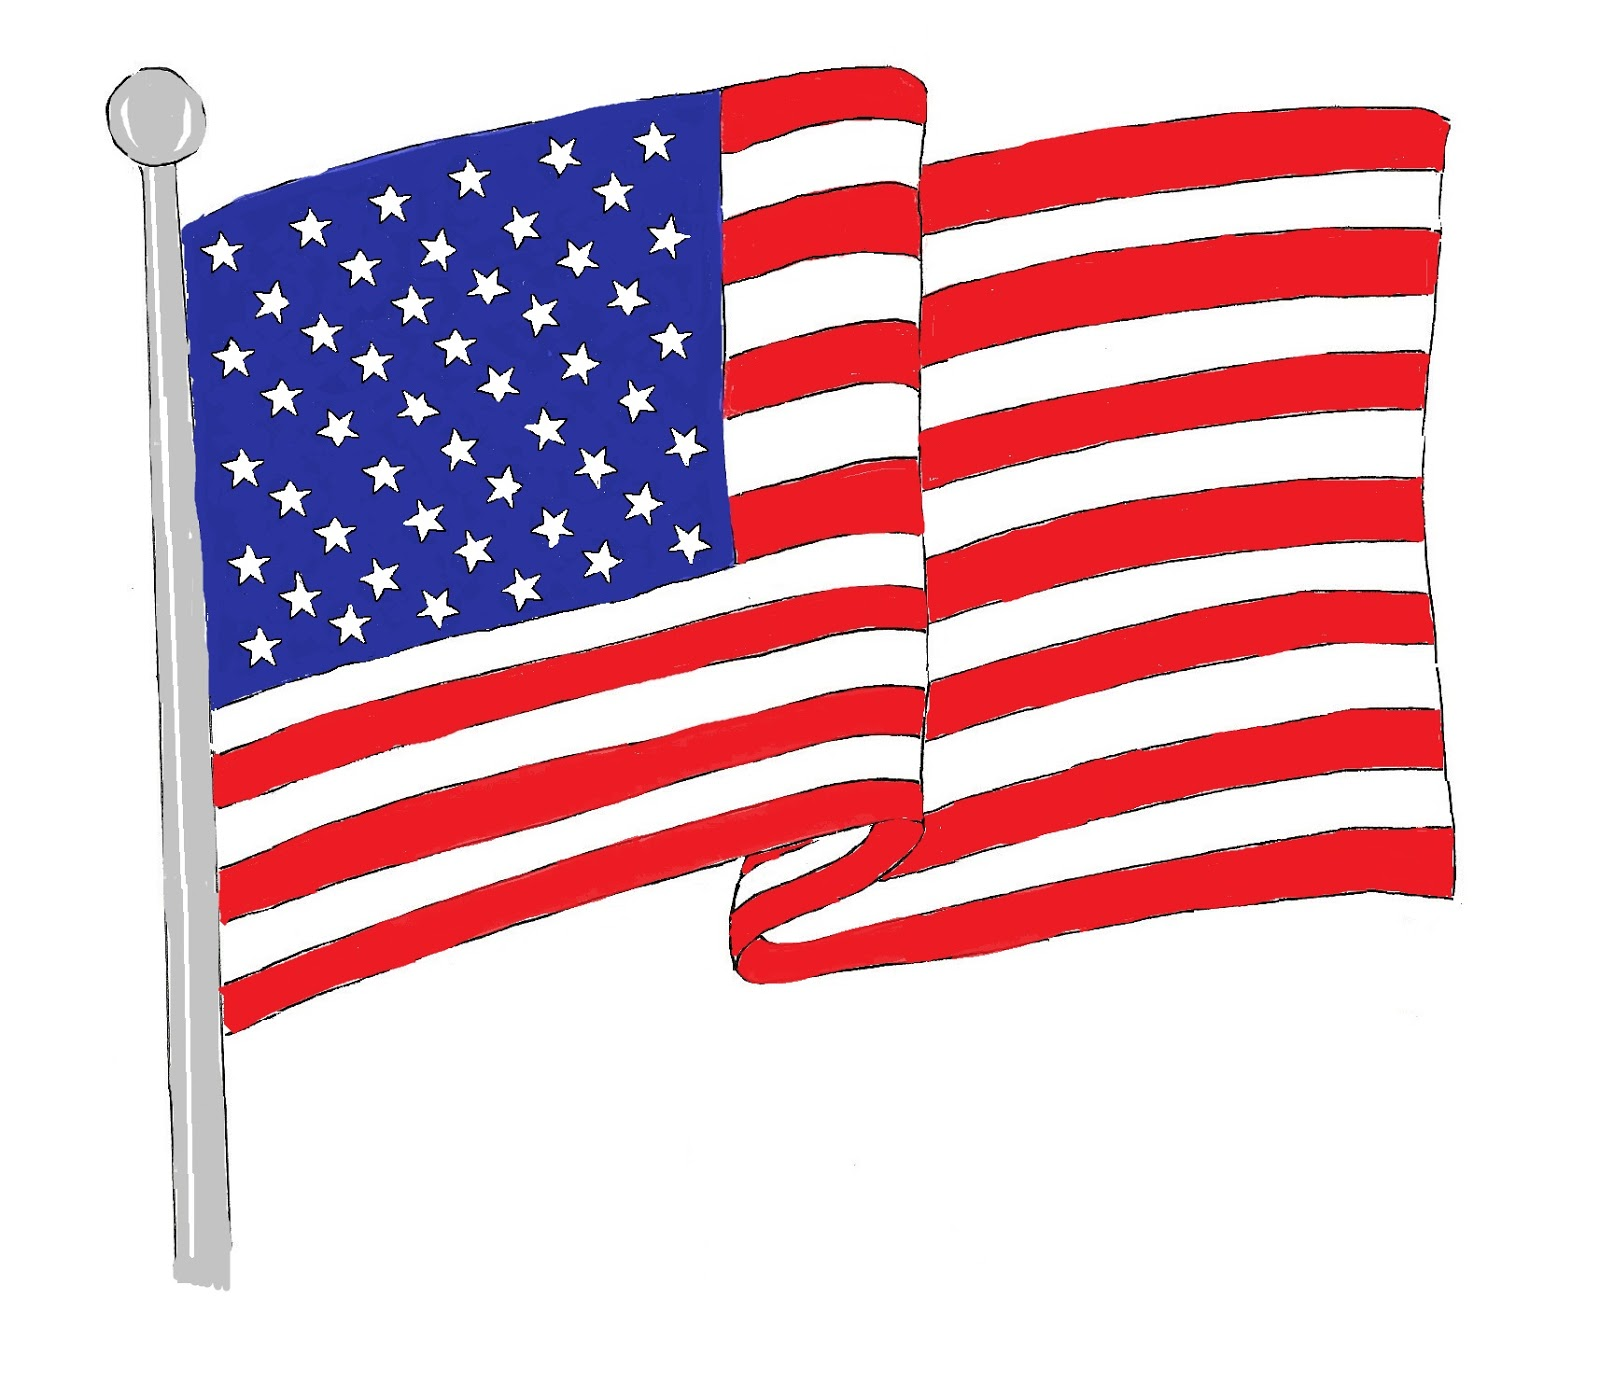 clip art of american flag animated - photo #18